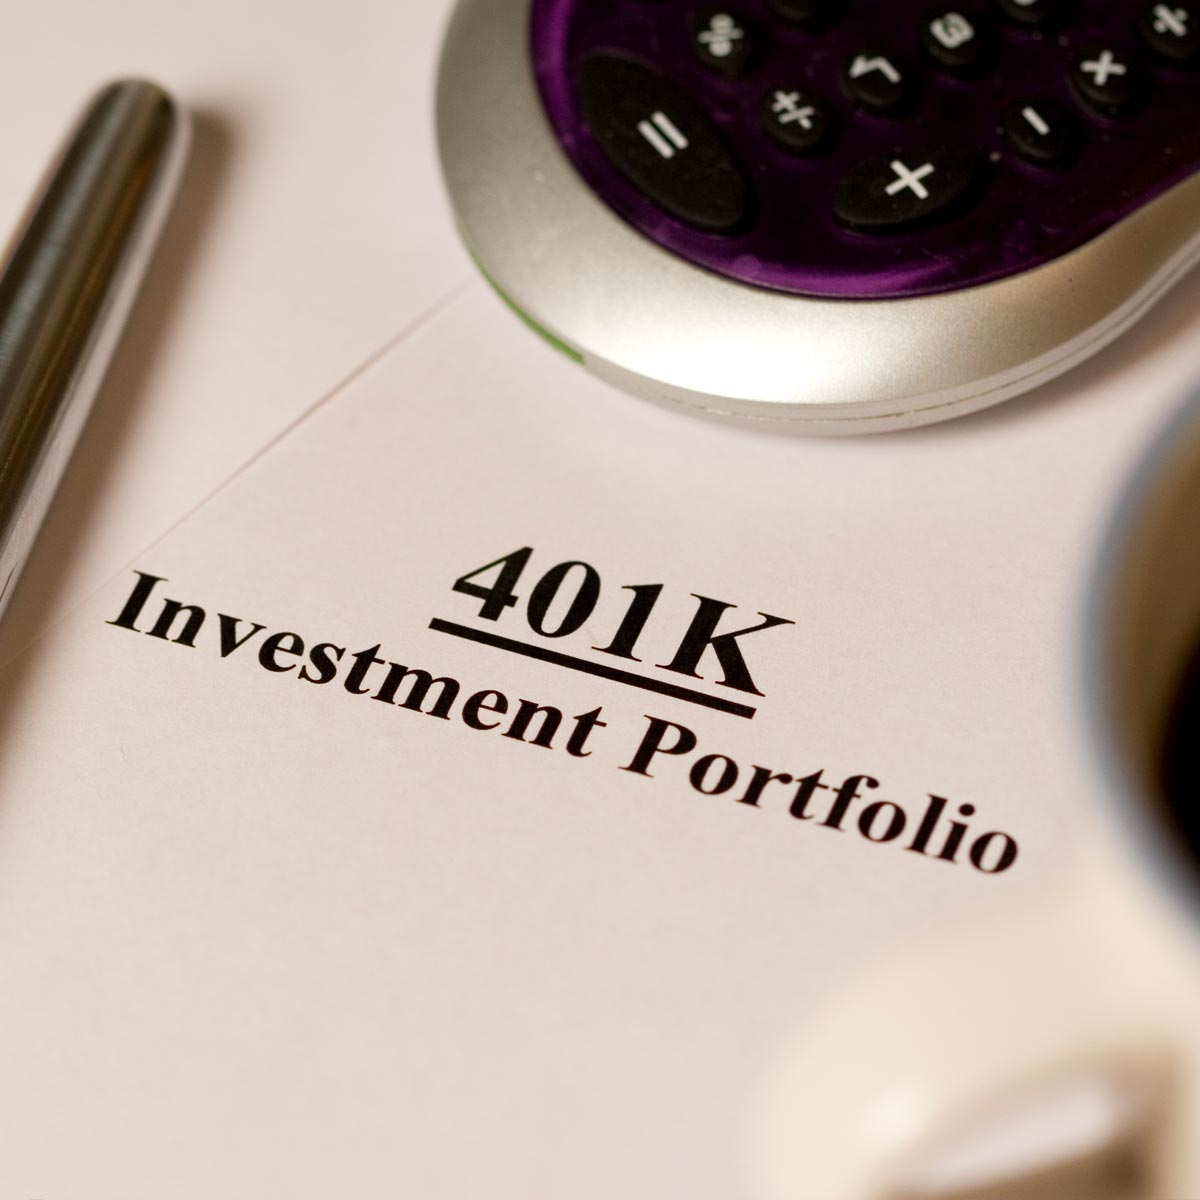 Close-up of the cover of a 401k investment portfolio